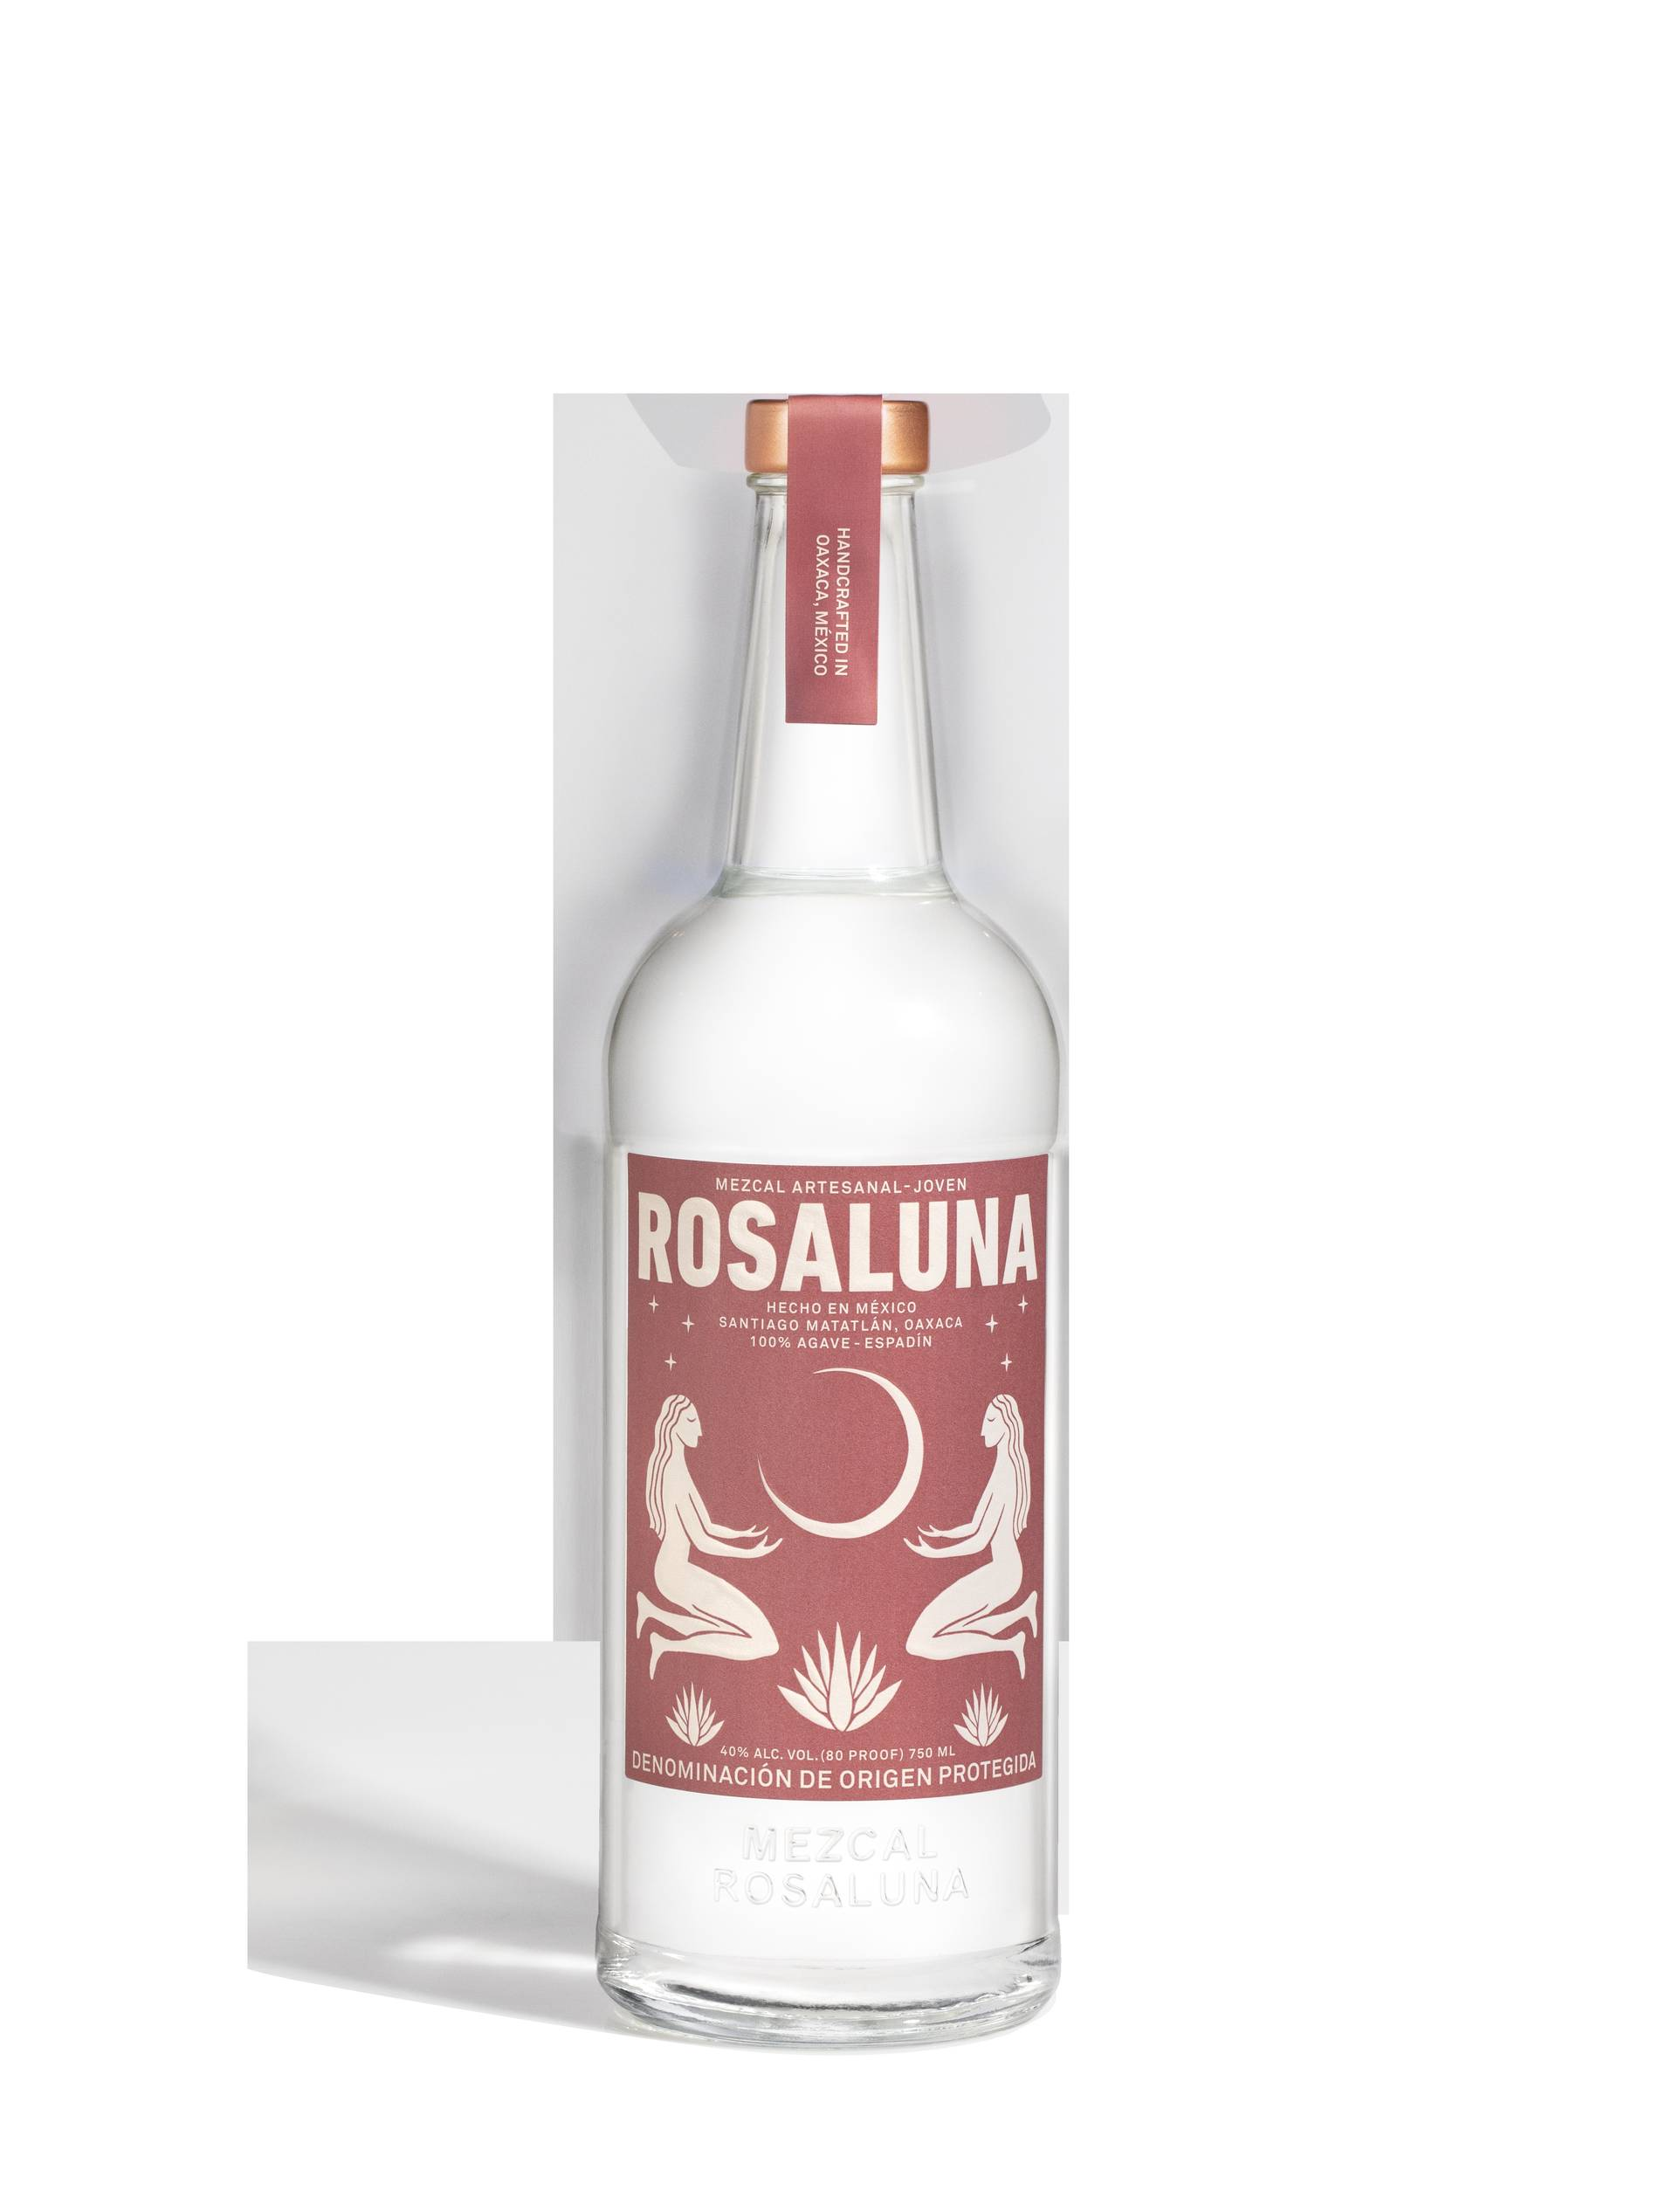 rosaluna mezcal bottle